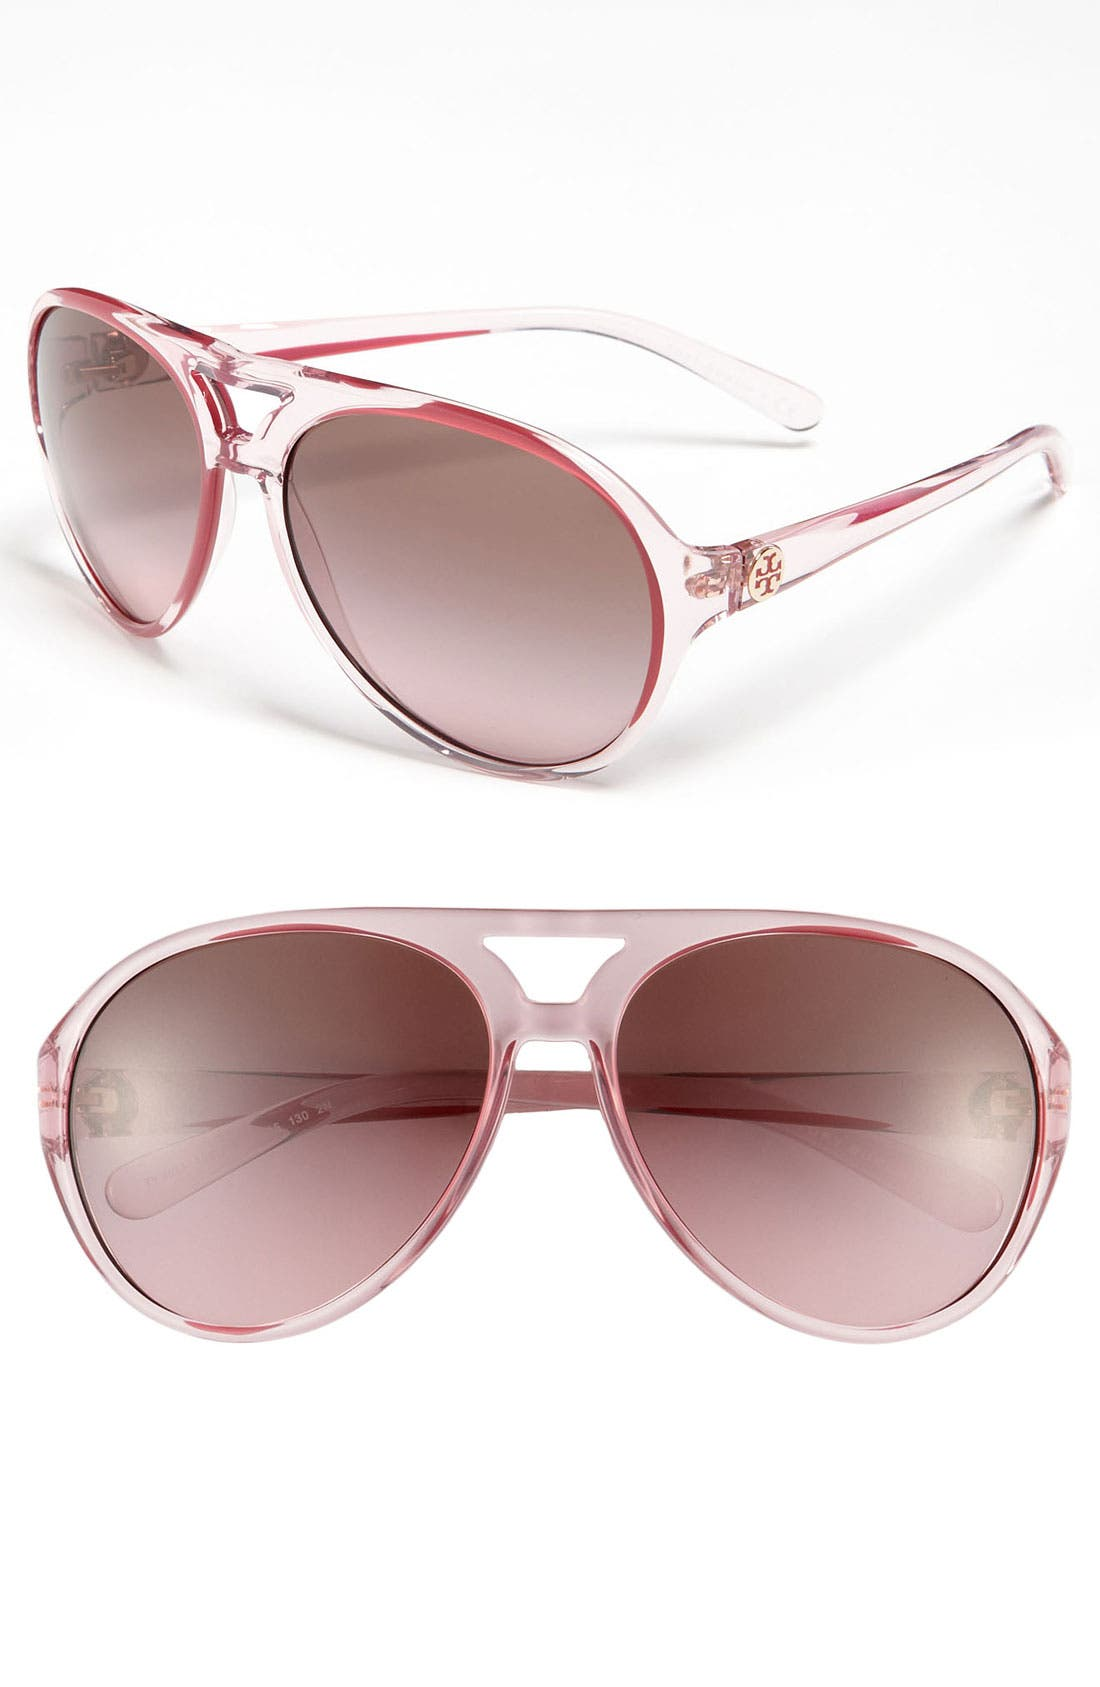 Alternate Image 1 Selected - Tory Burch Aviator Sunglasses